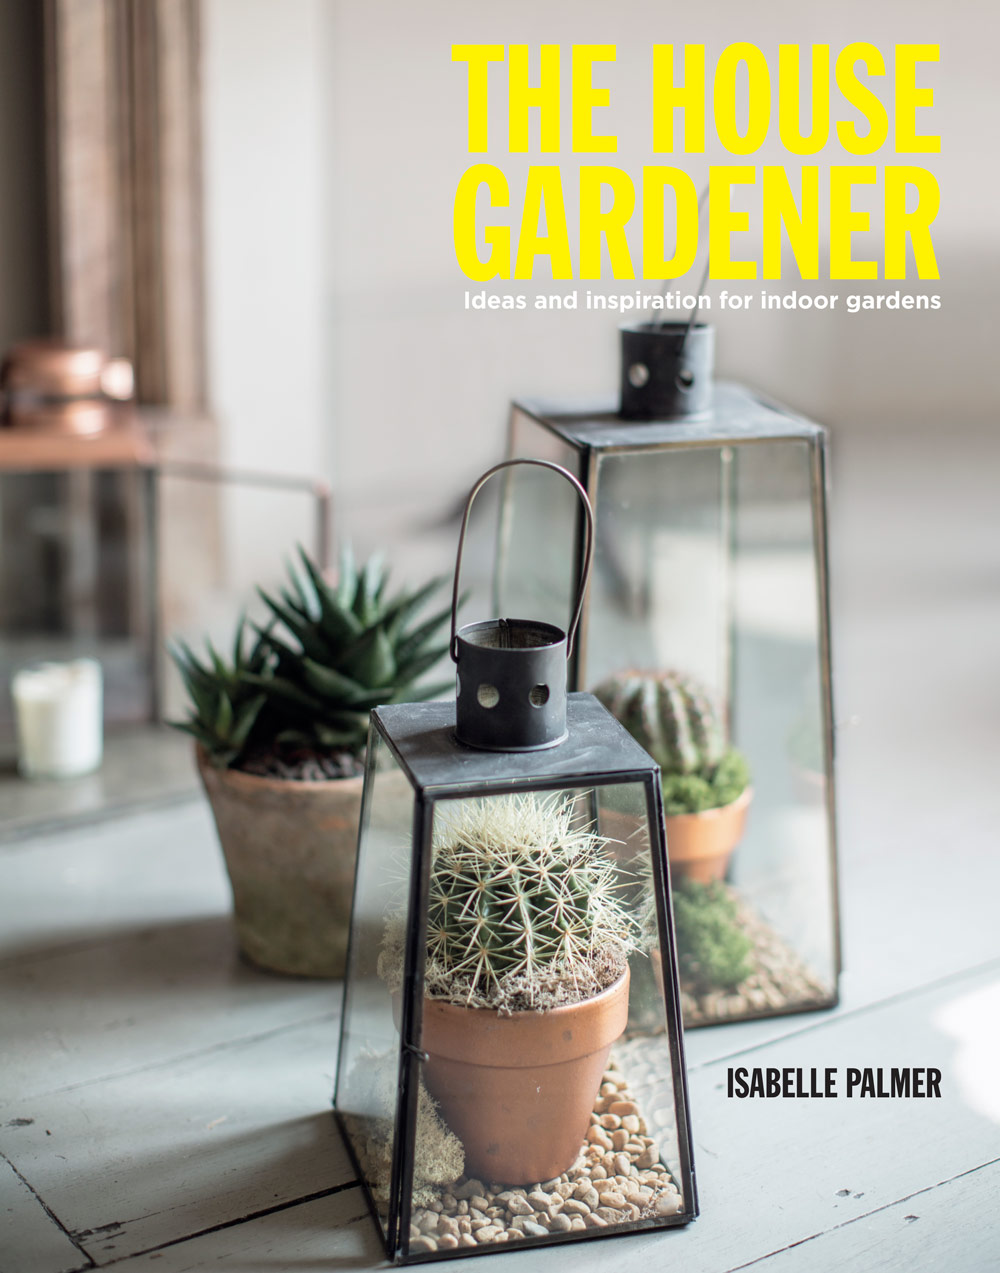 Fire Place Plants The House Gardener The House Gardener Book Out Now